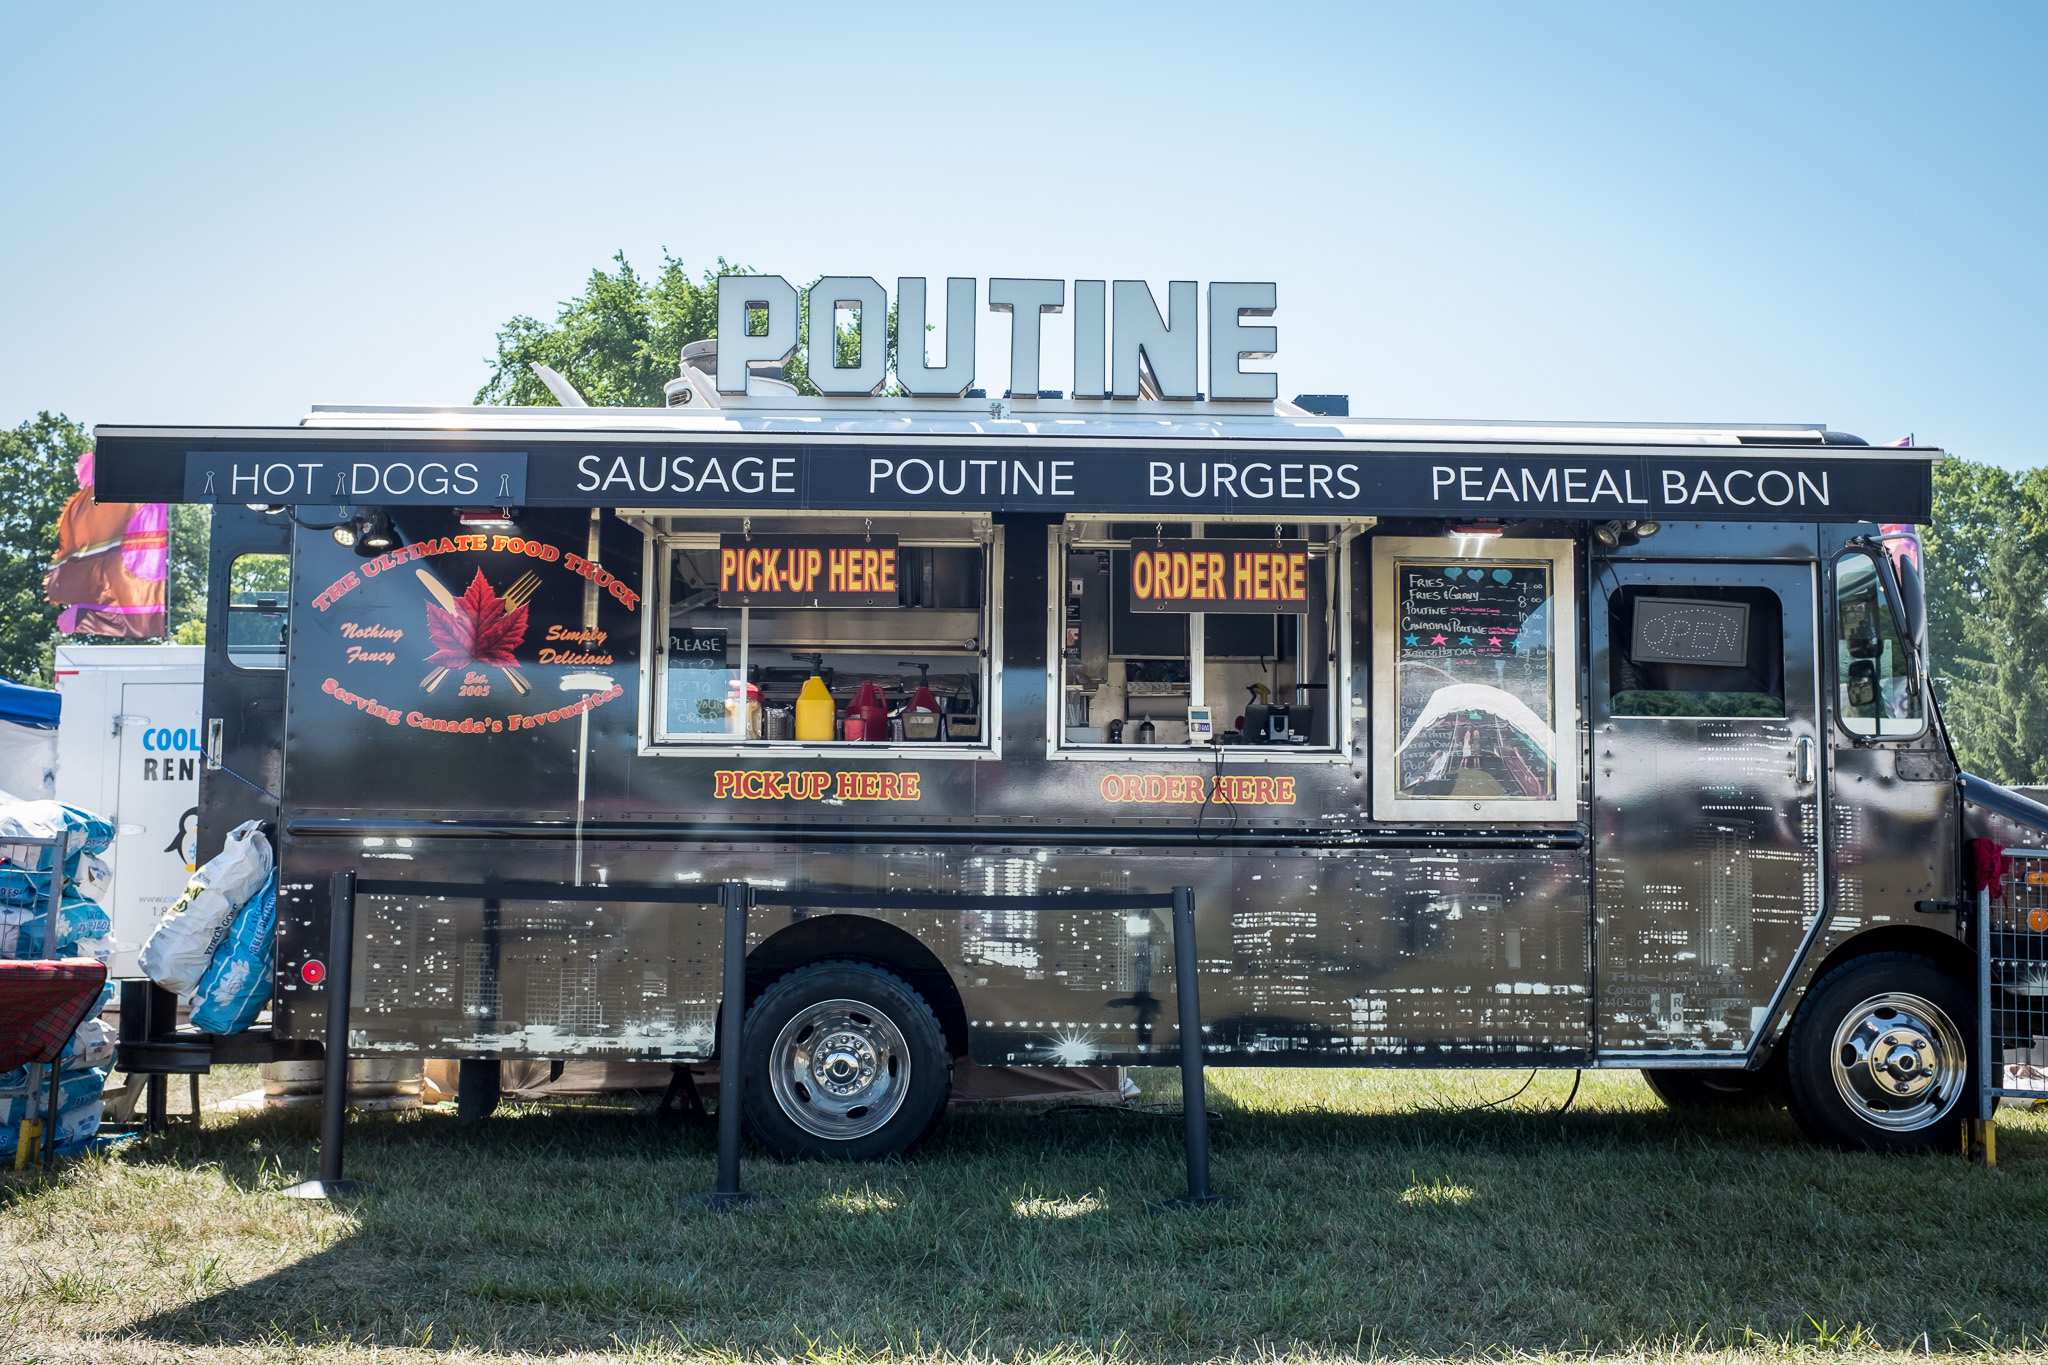 Ford Trucks 2016 >> The Ultimate Food Truck - Toronto Food Trucks : Toronto Food Trucks